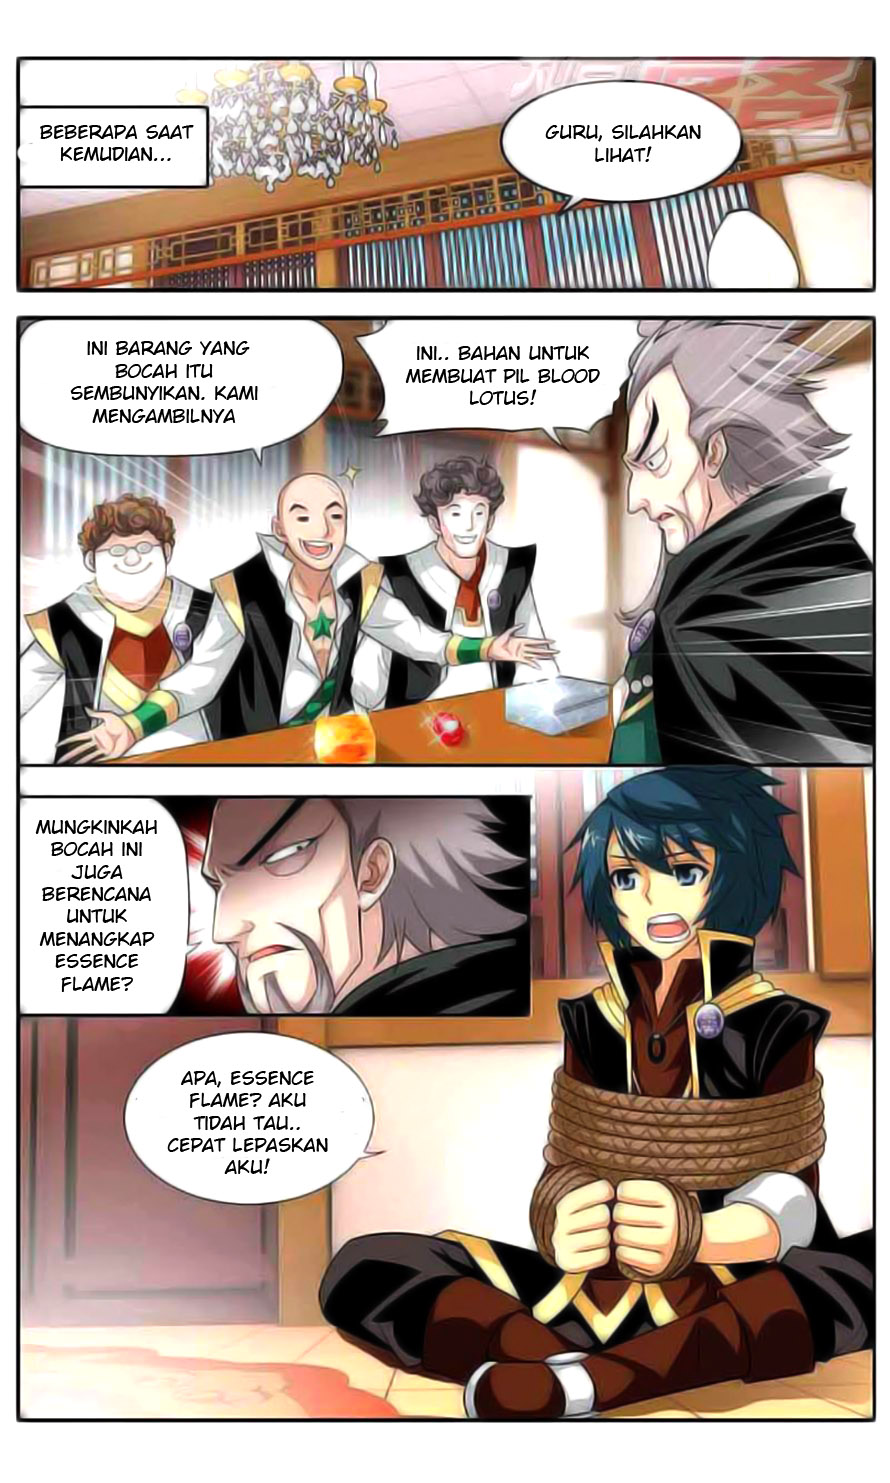 Dilarang COPAS - situs resmi www.mangacanblog.com - Komik battle through heaven 038 - chapter 38 39 Indonesia battle through heaven 038 - chapter 38 Terbaru 10|Baca Manga Komik Indonesia|Mangacan